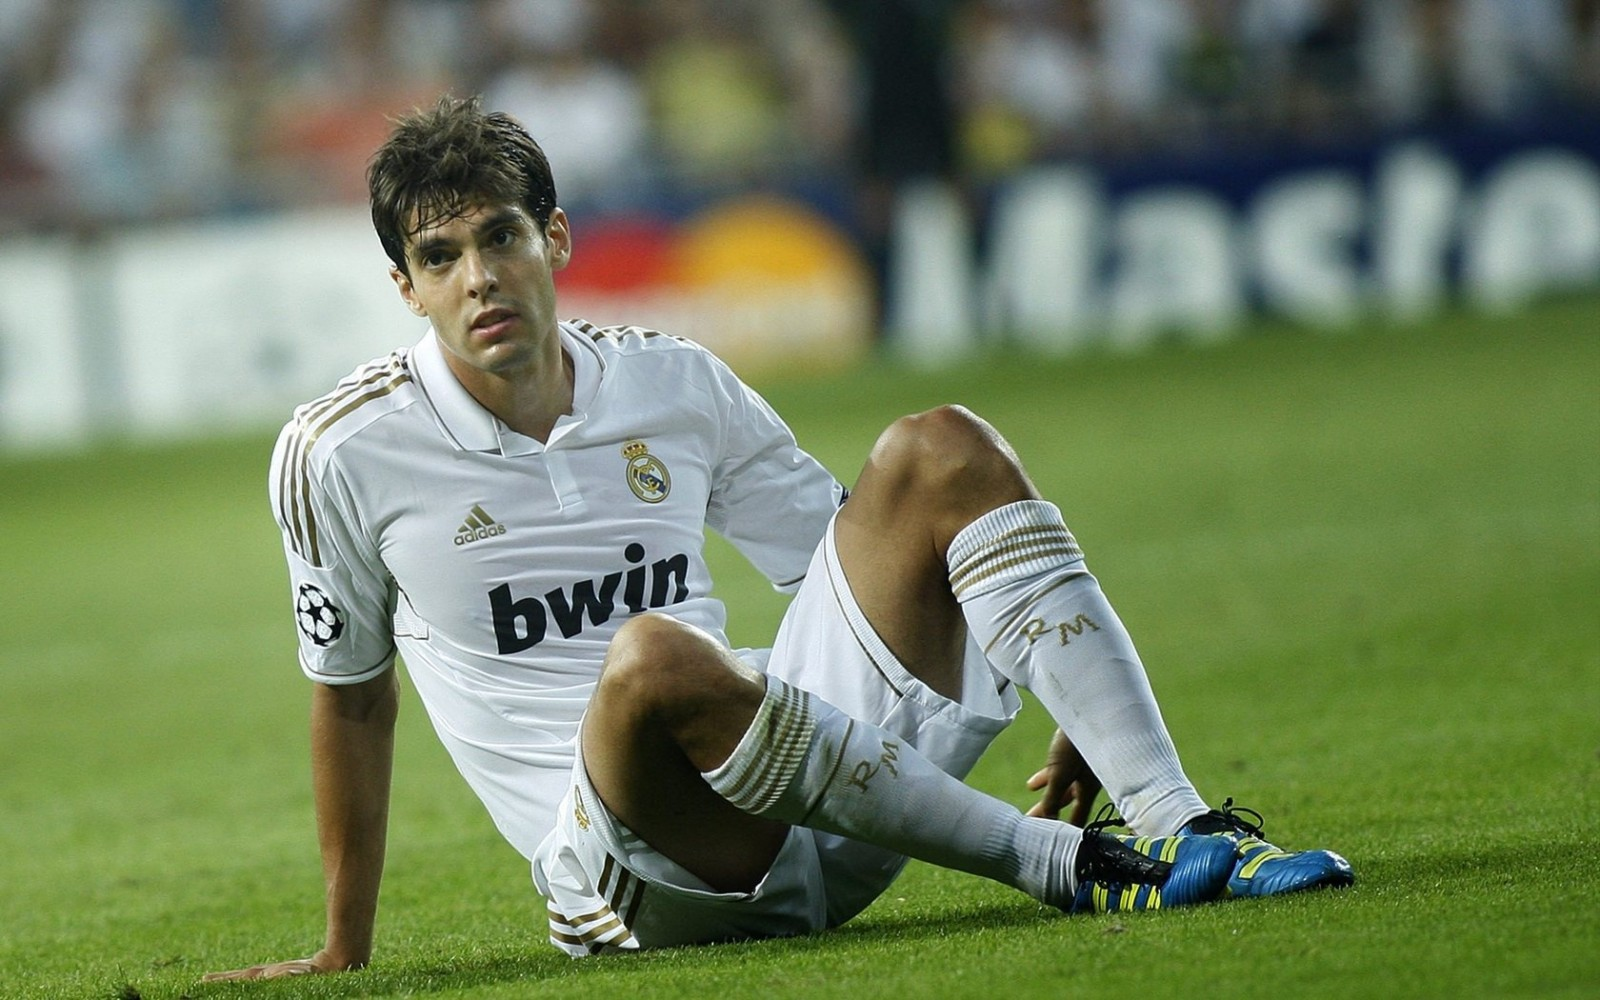 Kaka struggling for playing time at Real Madrid 1600x1000